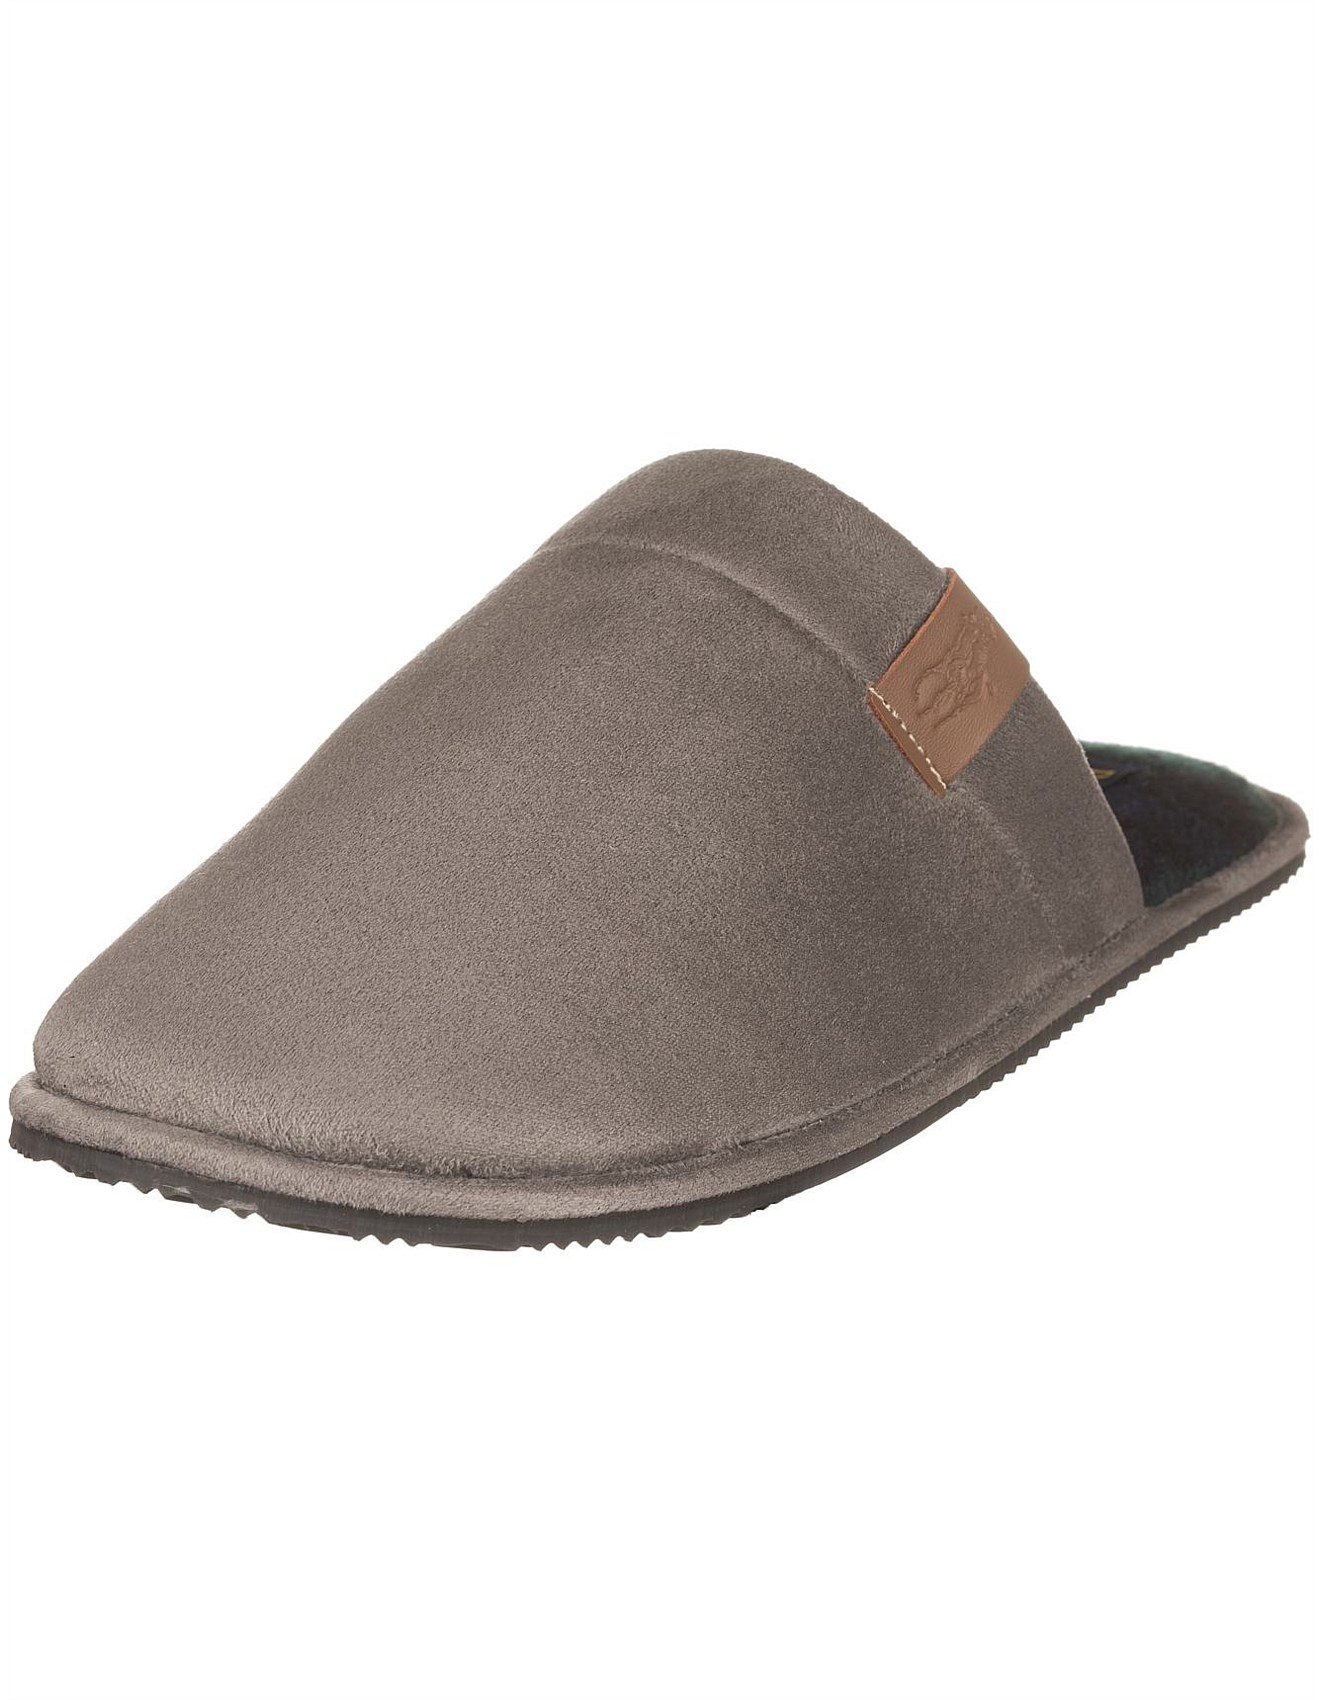 390ad8018ccb Men s Slippers